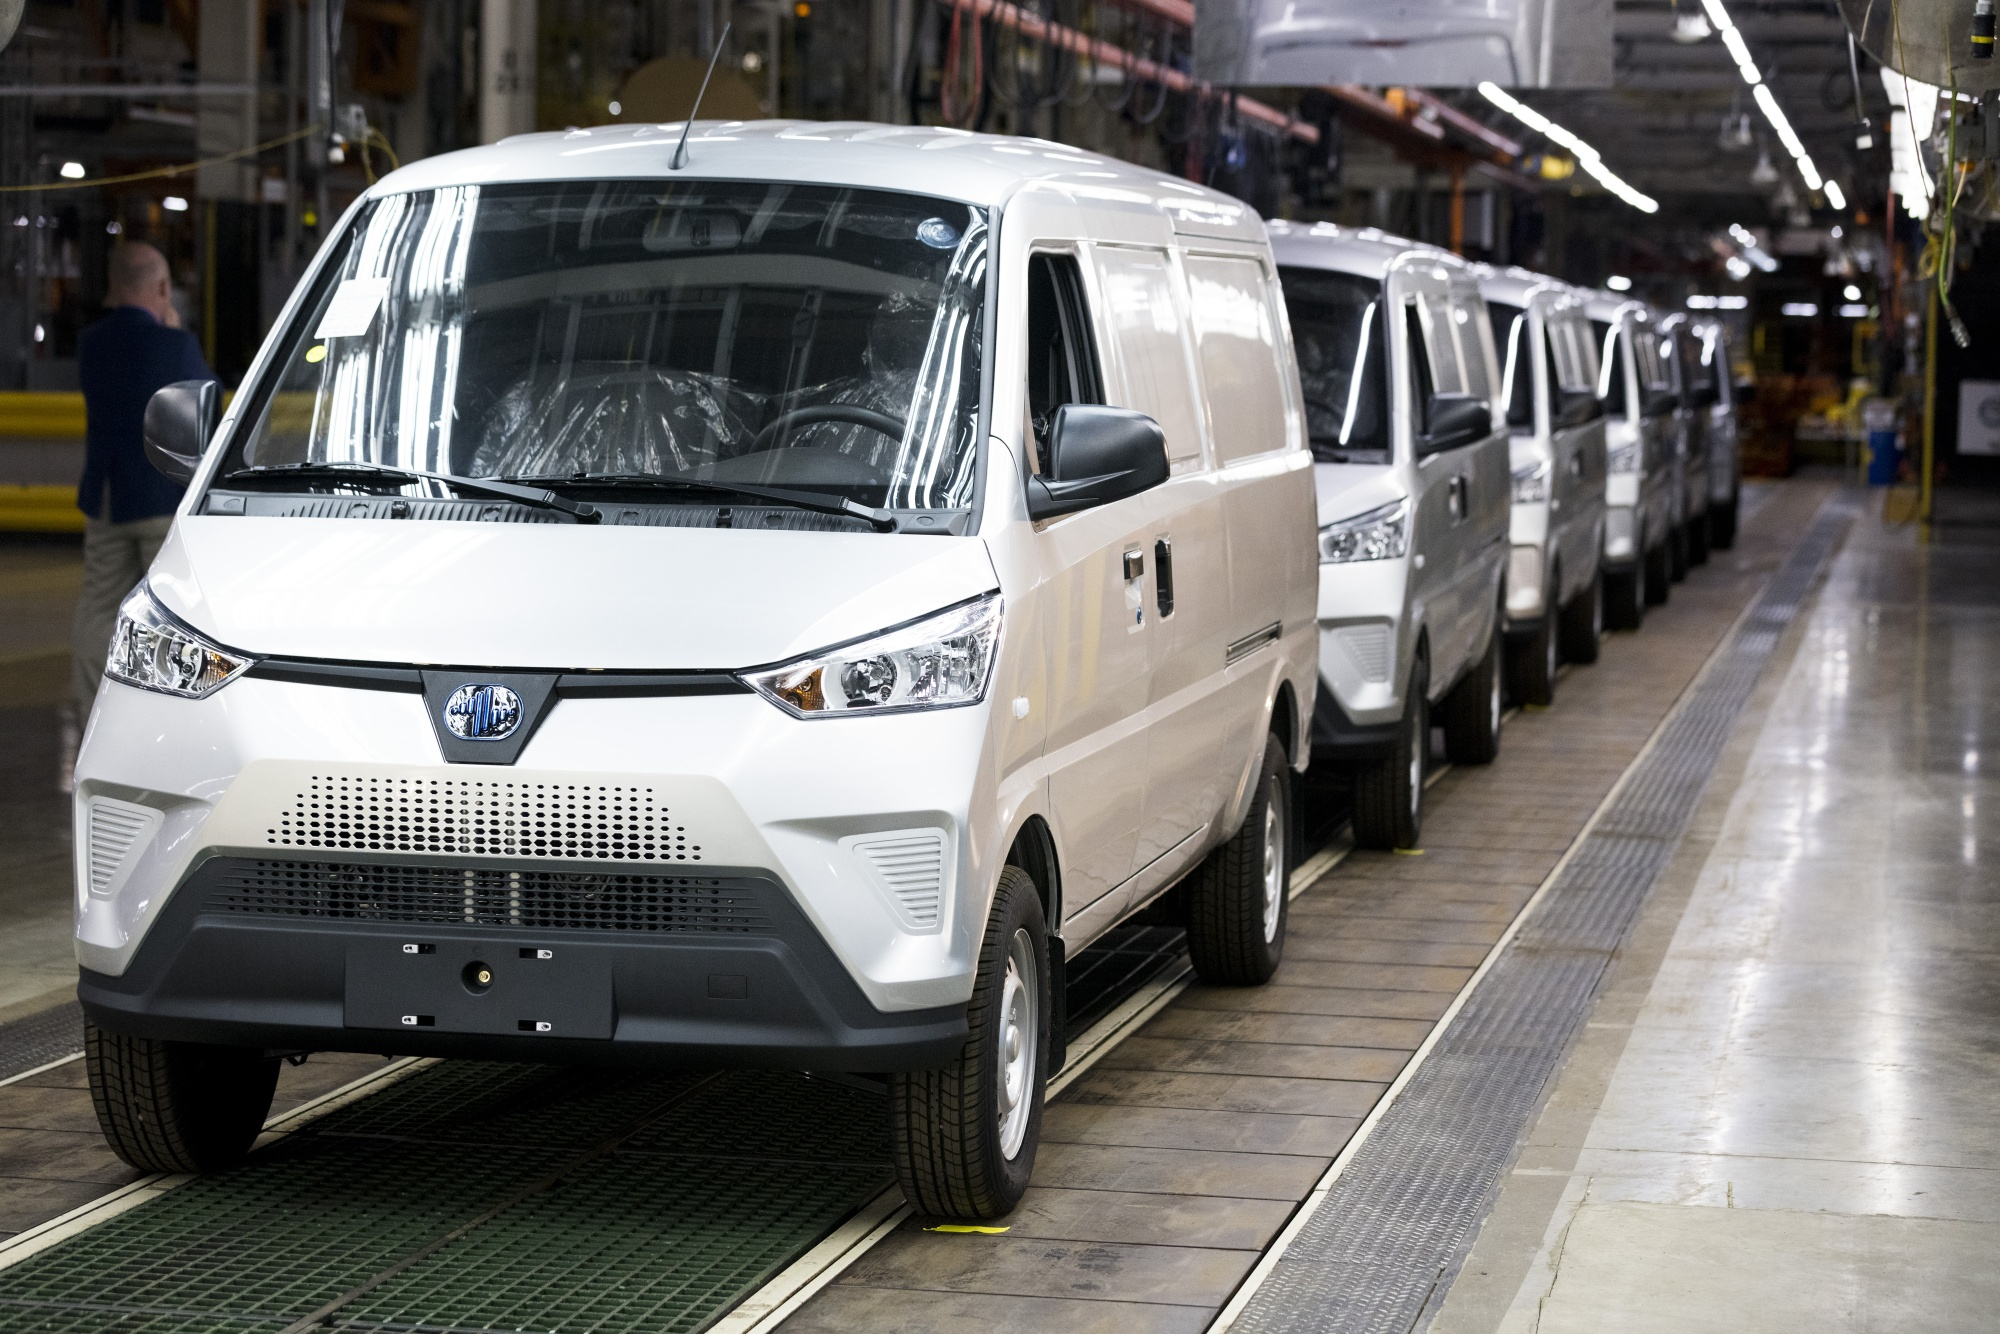 Electric Last Mile Solutions Inc. delivery vans on the production floor of the company's plant in Mishawaka, Indiana.